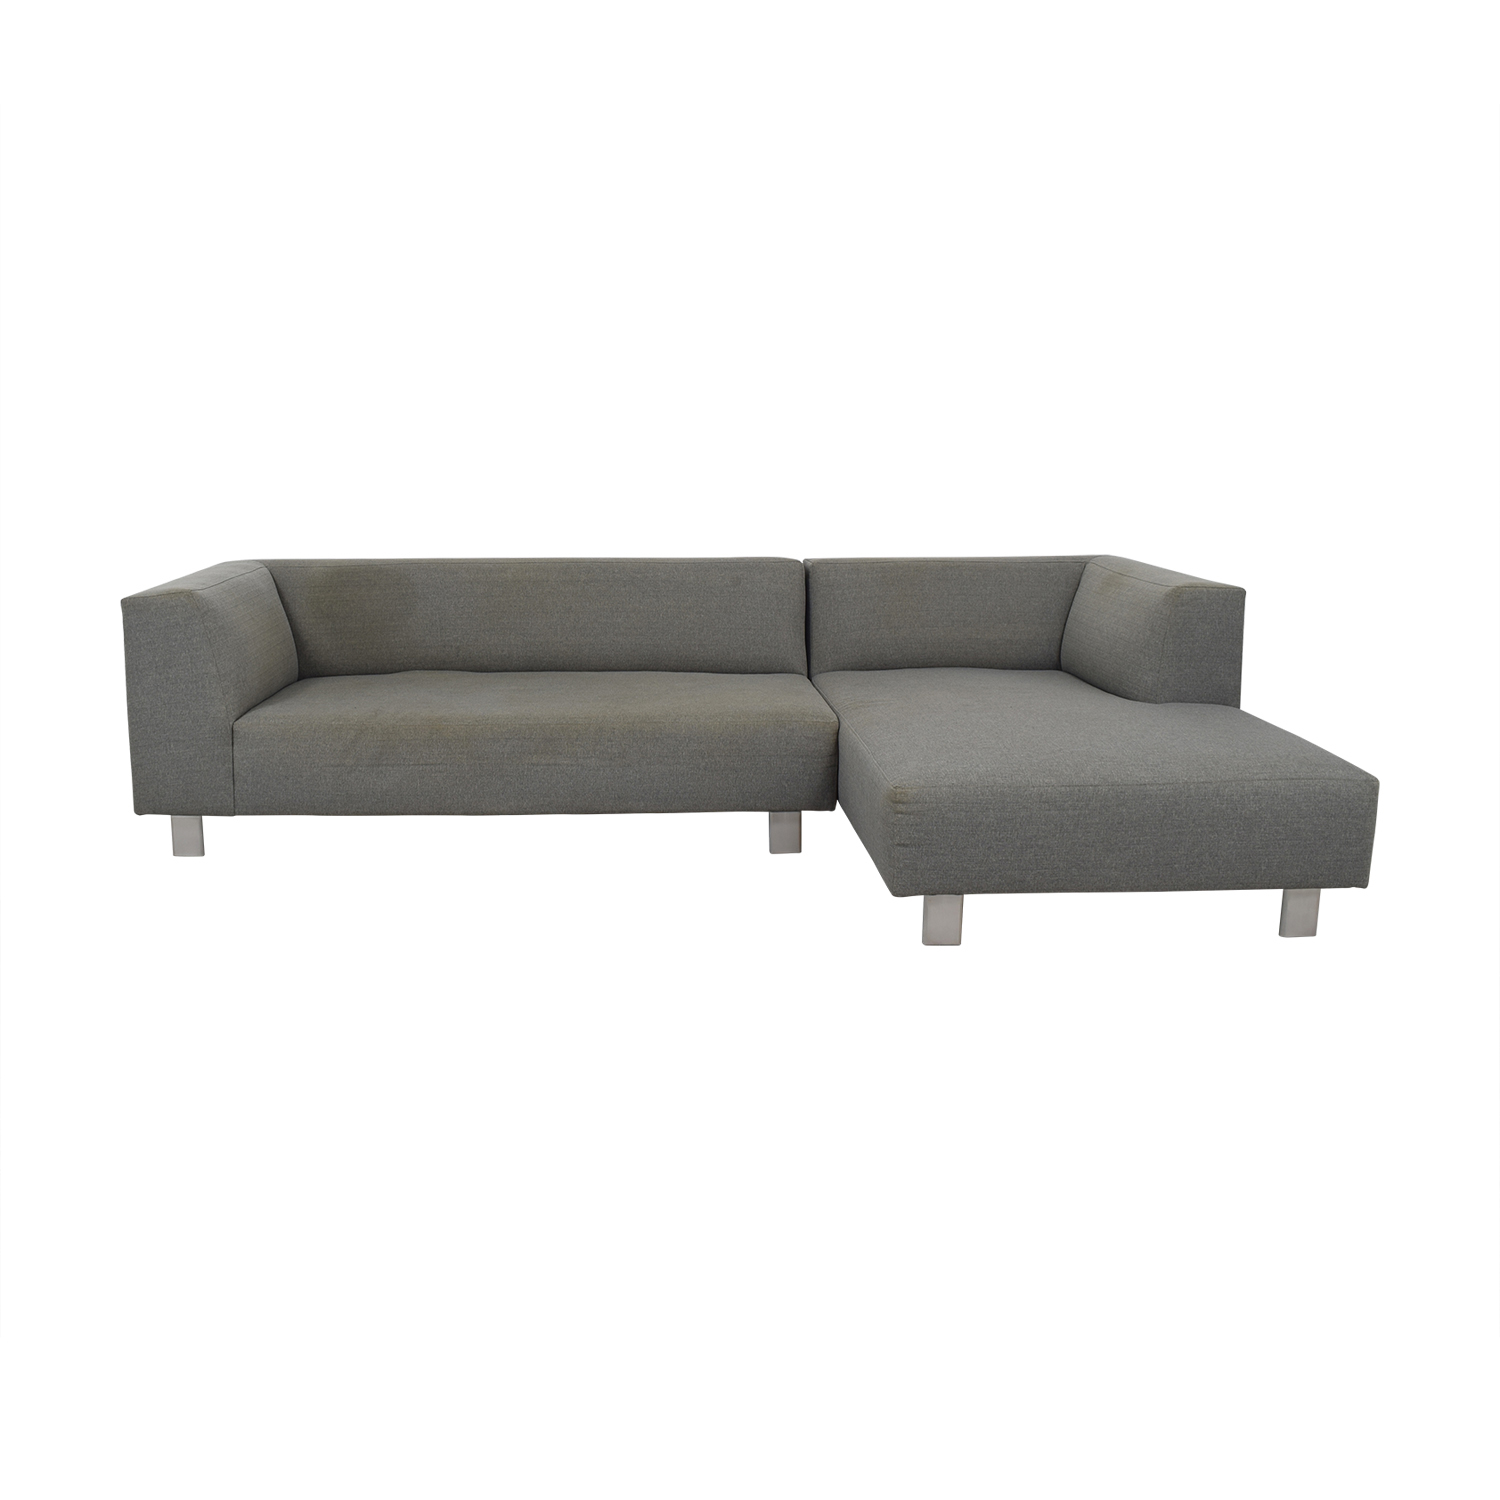 Room & Board Room & Board Grey Chaise Sectional nyc